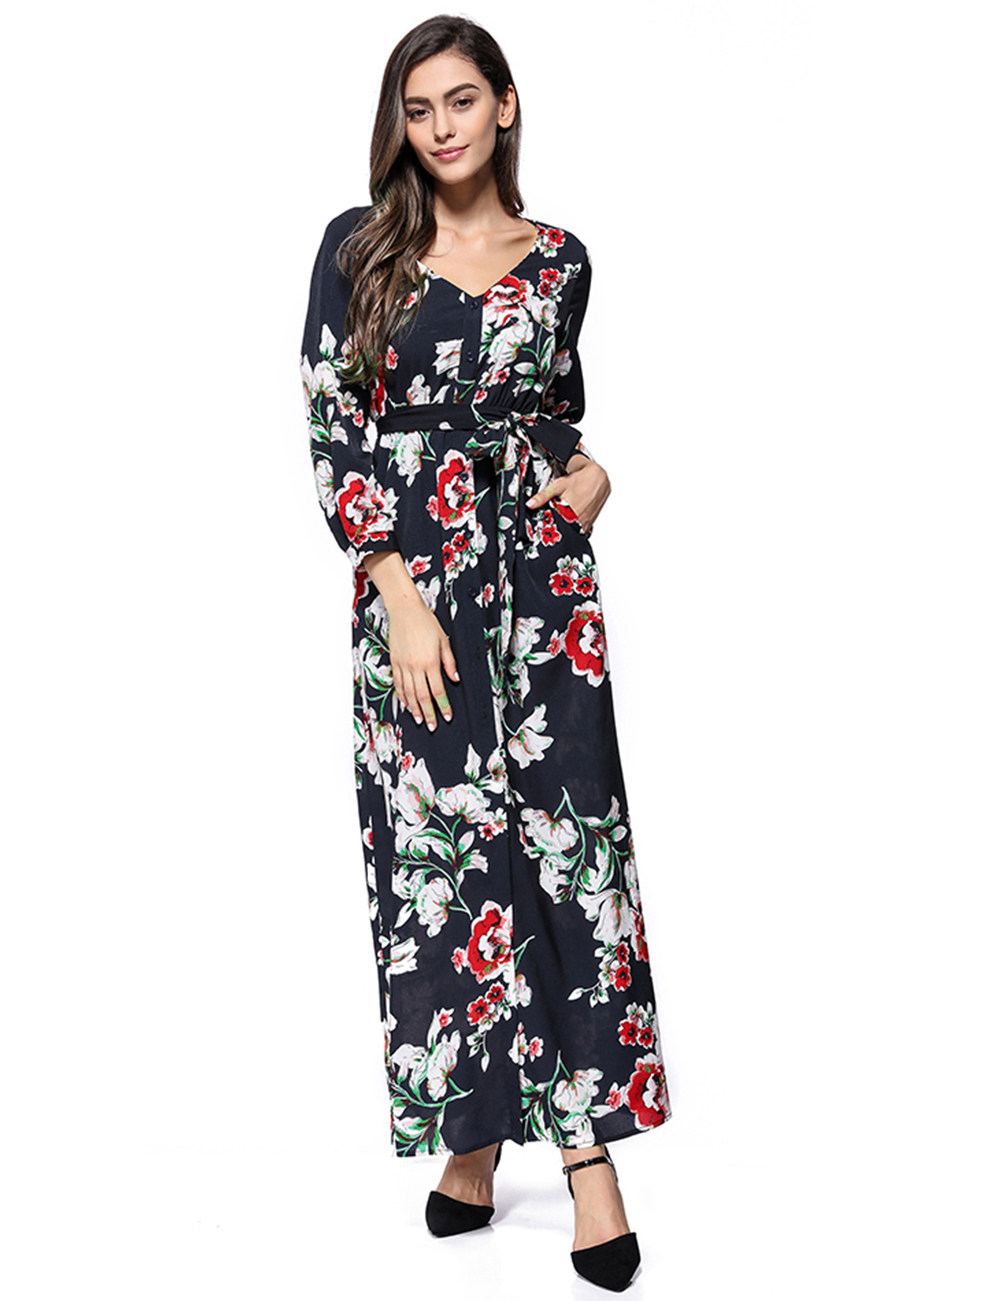 //cdn.affectcloud.com/feelingirldress/upload/imgs/2019-06-04/VZ190459-M04/VZ190459-M04-6.jpg